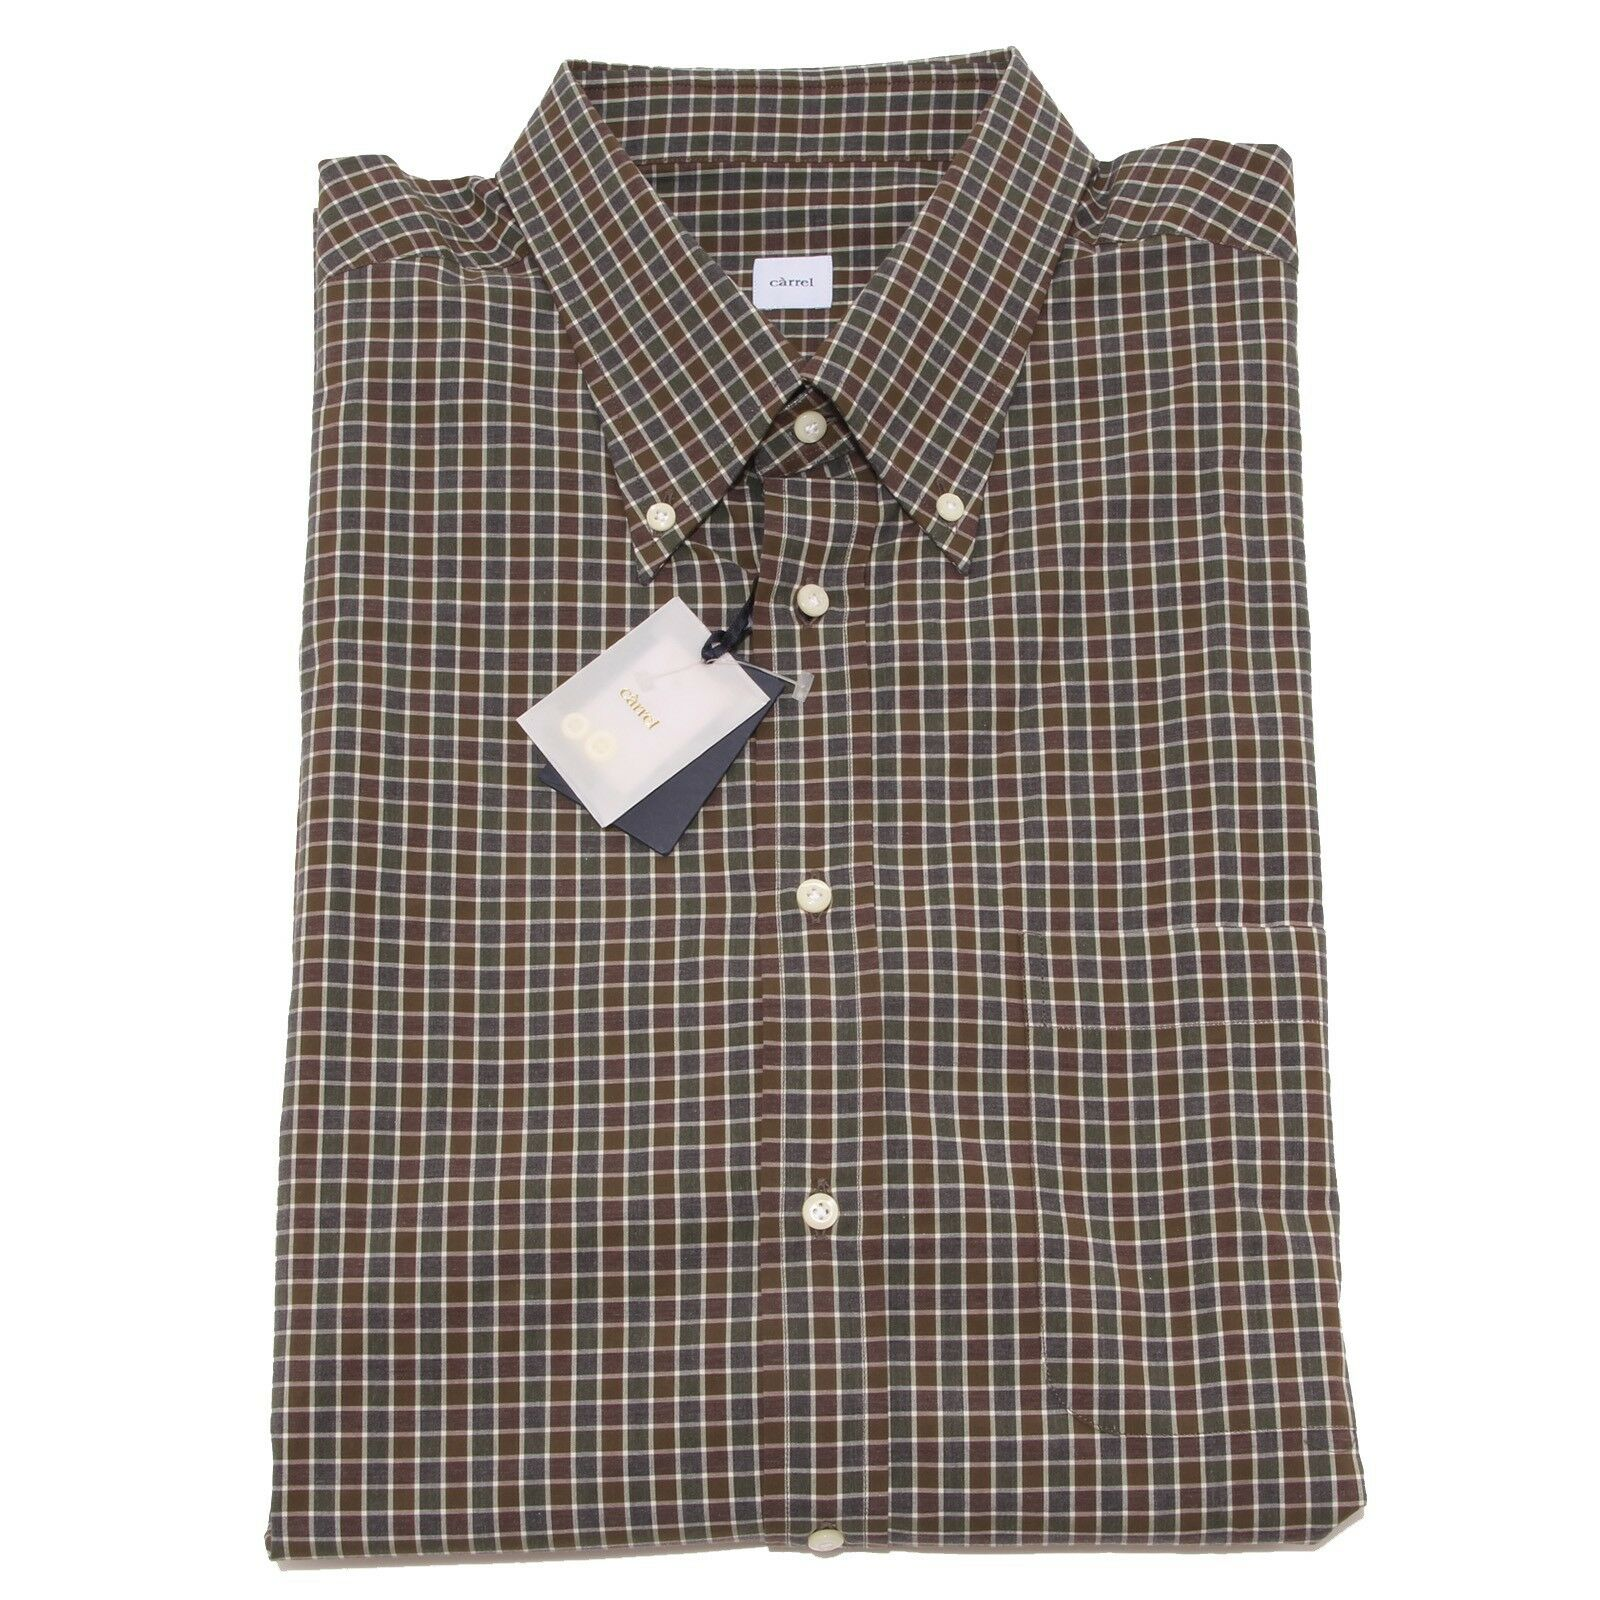 8337P camicia uomo quadretti CARREL manica lunga shirt men